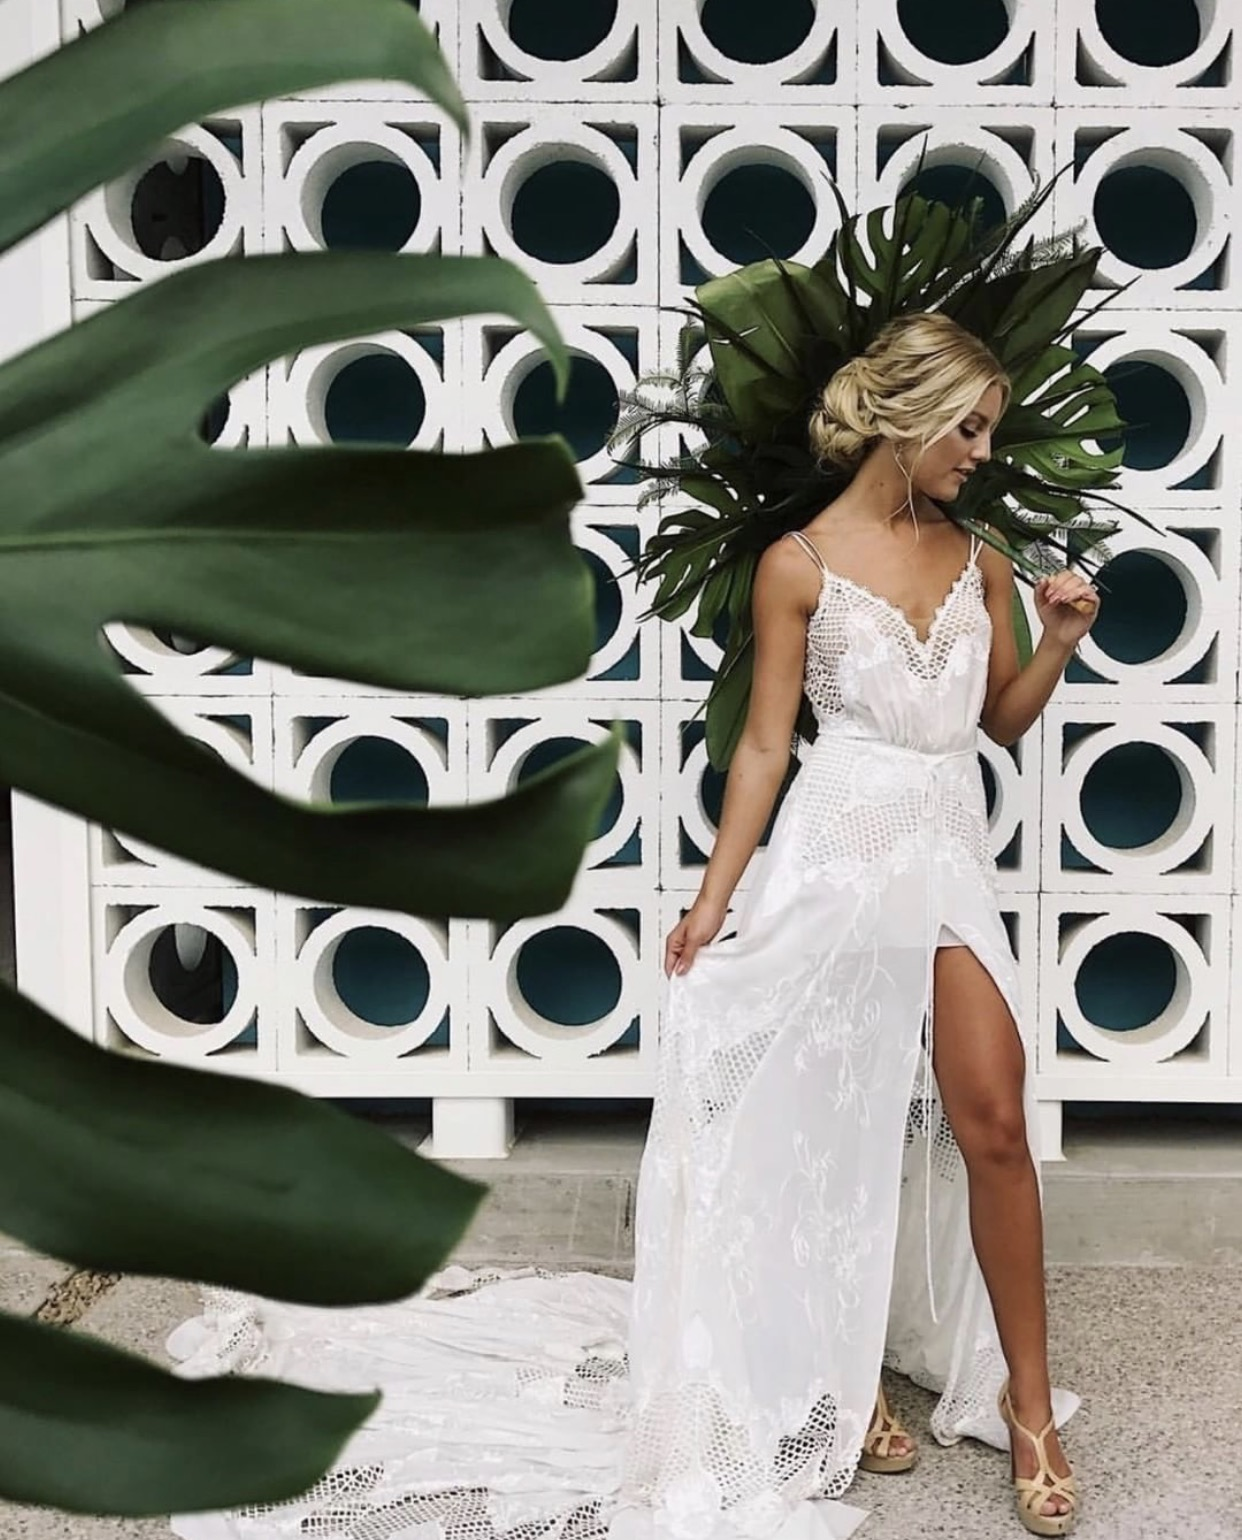 Design & Coordination:@Btseventmanagement Venue: @Mountainshadows @Gregatmountainshadows @Zeina_mountainshadows Floral Design: @AZflowerbar Model: @Jackittyy Hair and Makeup: @Chanelmolleobeauty Video: @Amorefilms @libraego Photographer: @elysehallphotography Dress: @Galialahav Paper products: @victoriayorkdesign Rentals: @glamourandwoods @classicparty Linens: @wildflowerlinen